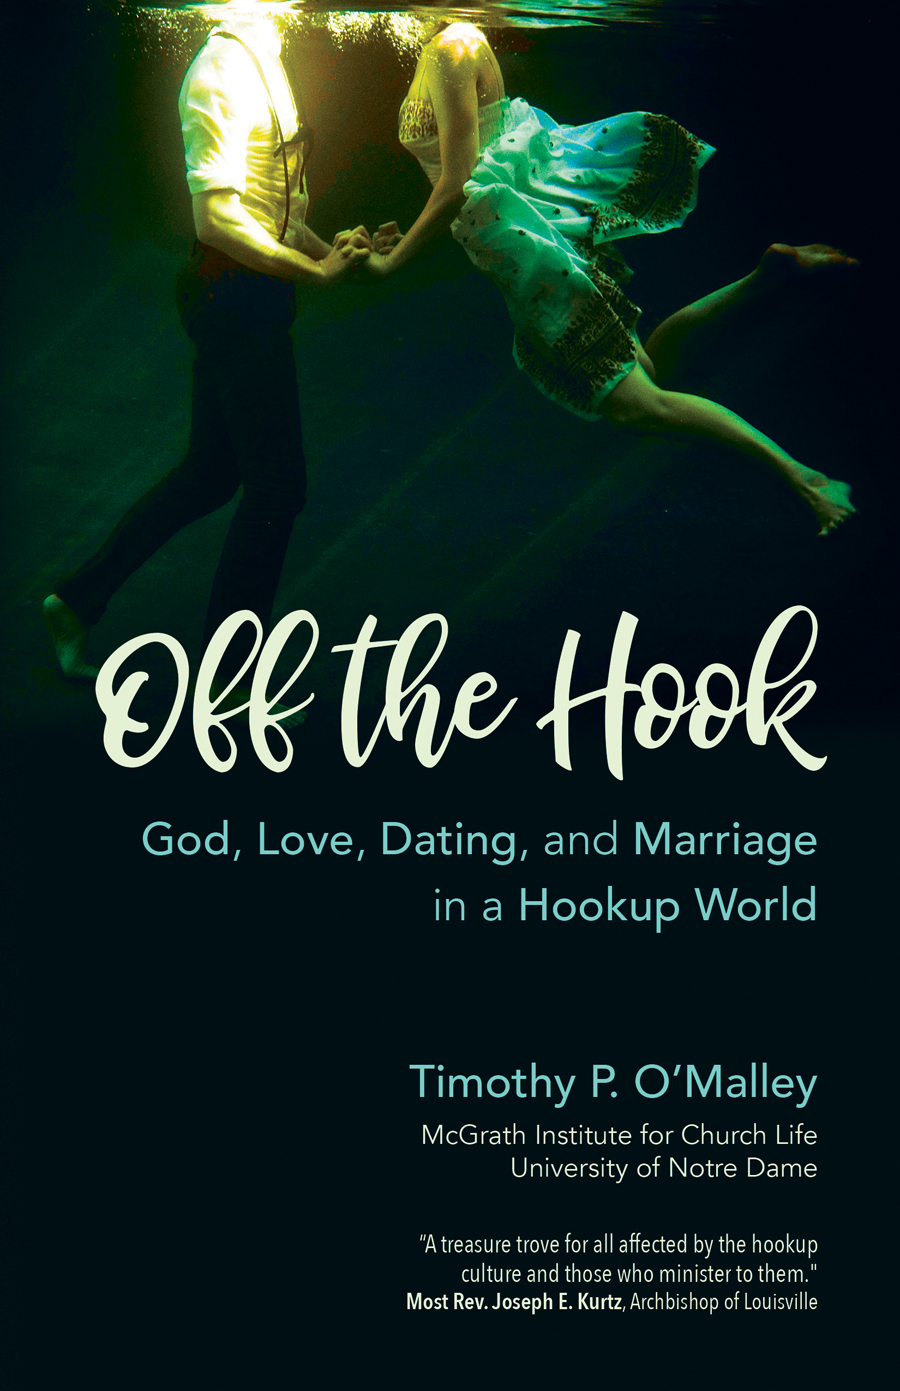 Biblical hookup focus on the family